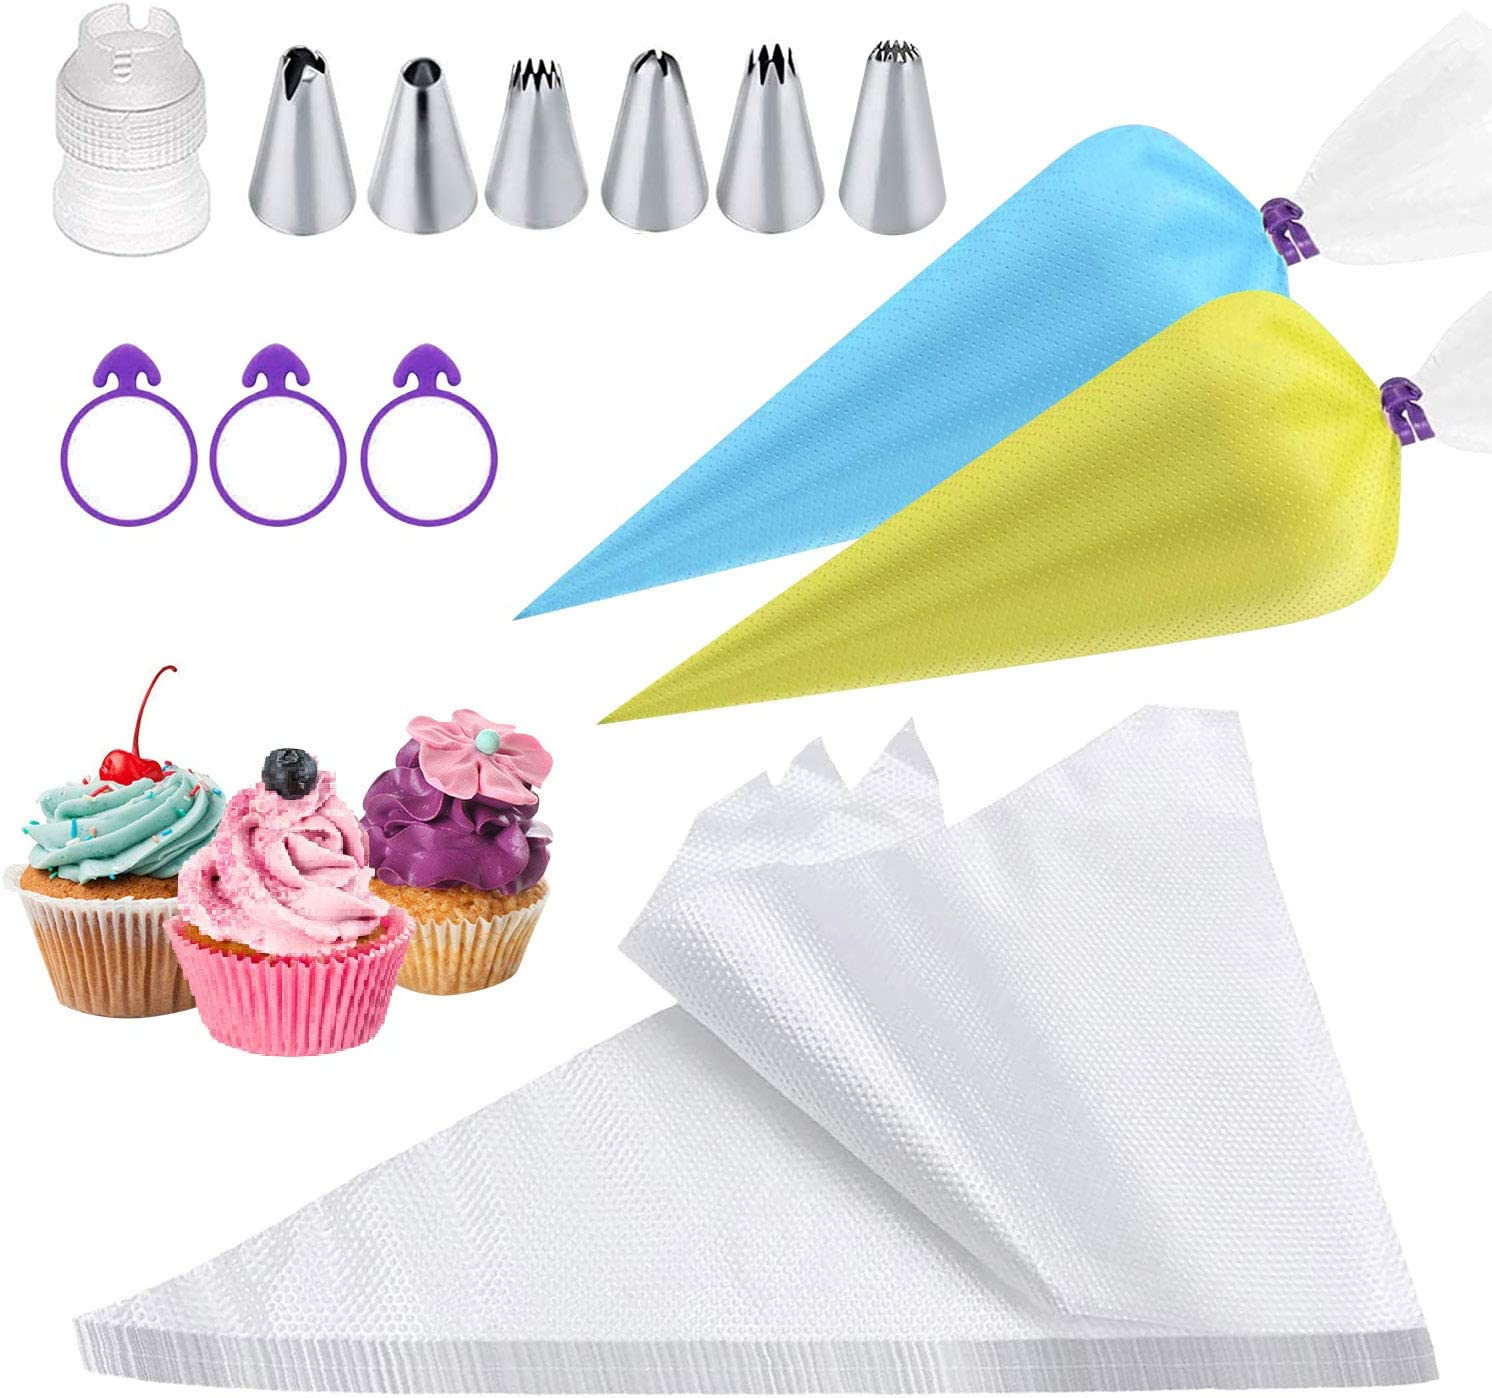 100 pcs/set Disposable Piping Bags with 6 Cupcake Icing Tips, 12 Inch Thickened Pastry Bag for Cream Frosting, Cupcake Cake Decorating Supplies Bonus 3 Bag Ties & 1 Icing Tips Coupler